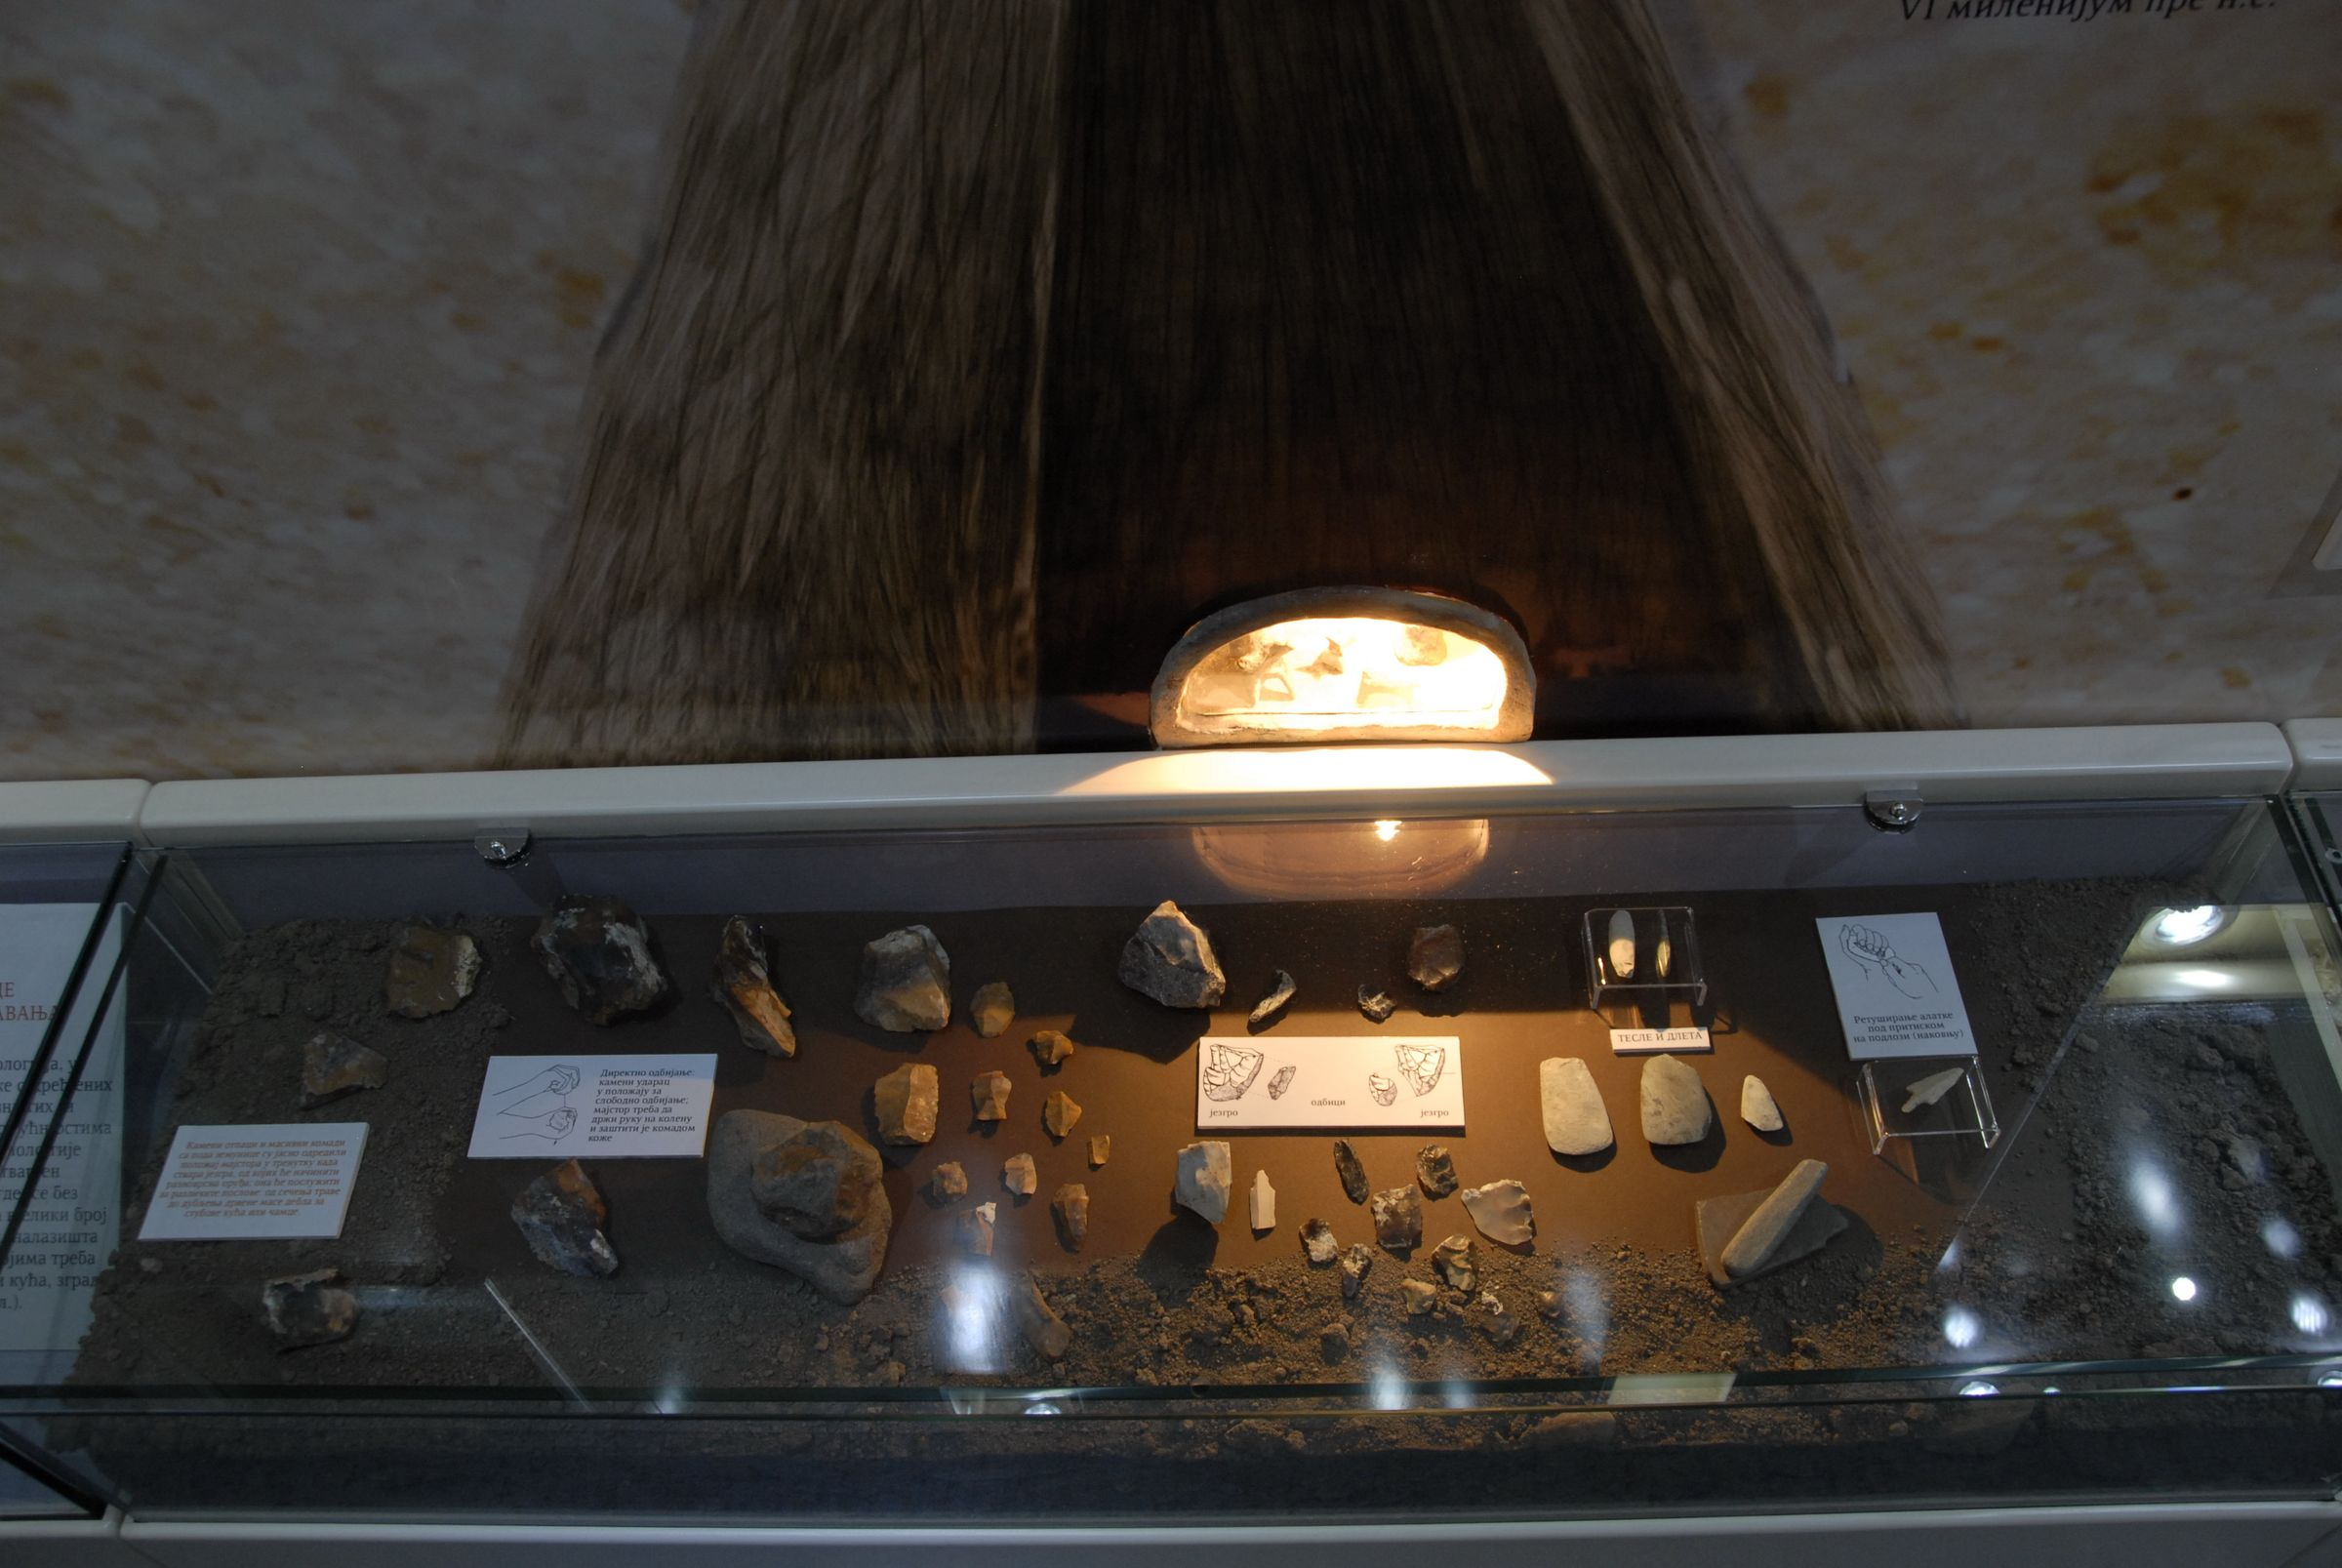 Display case with stone material